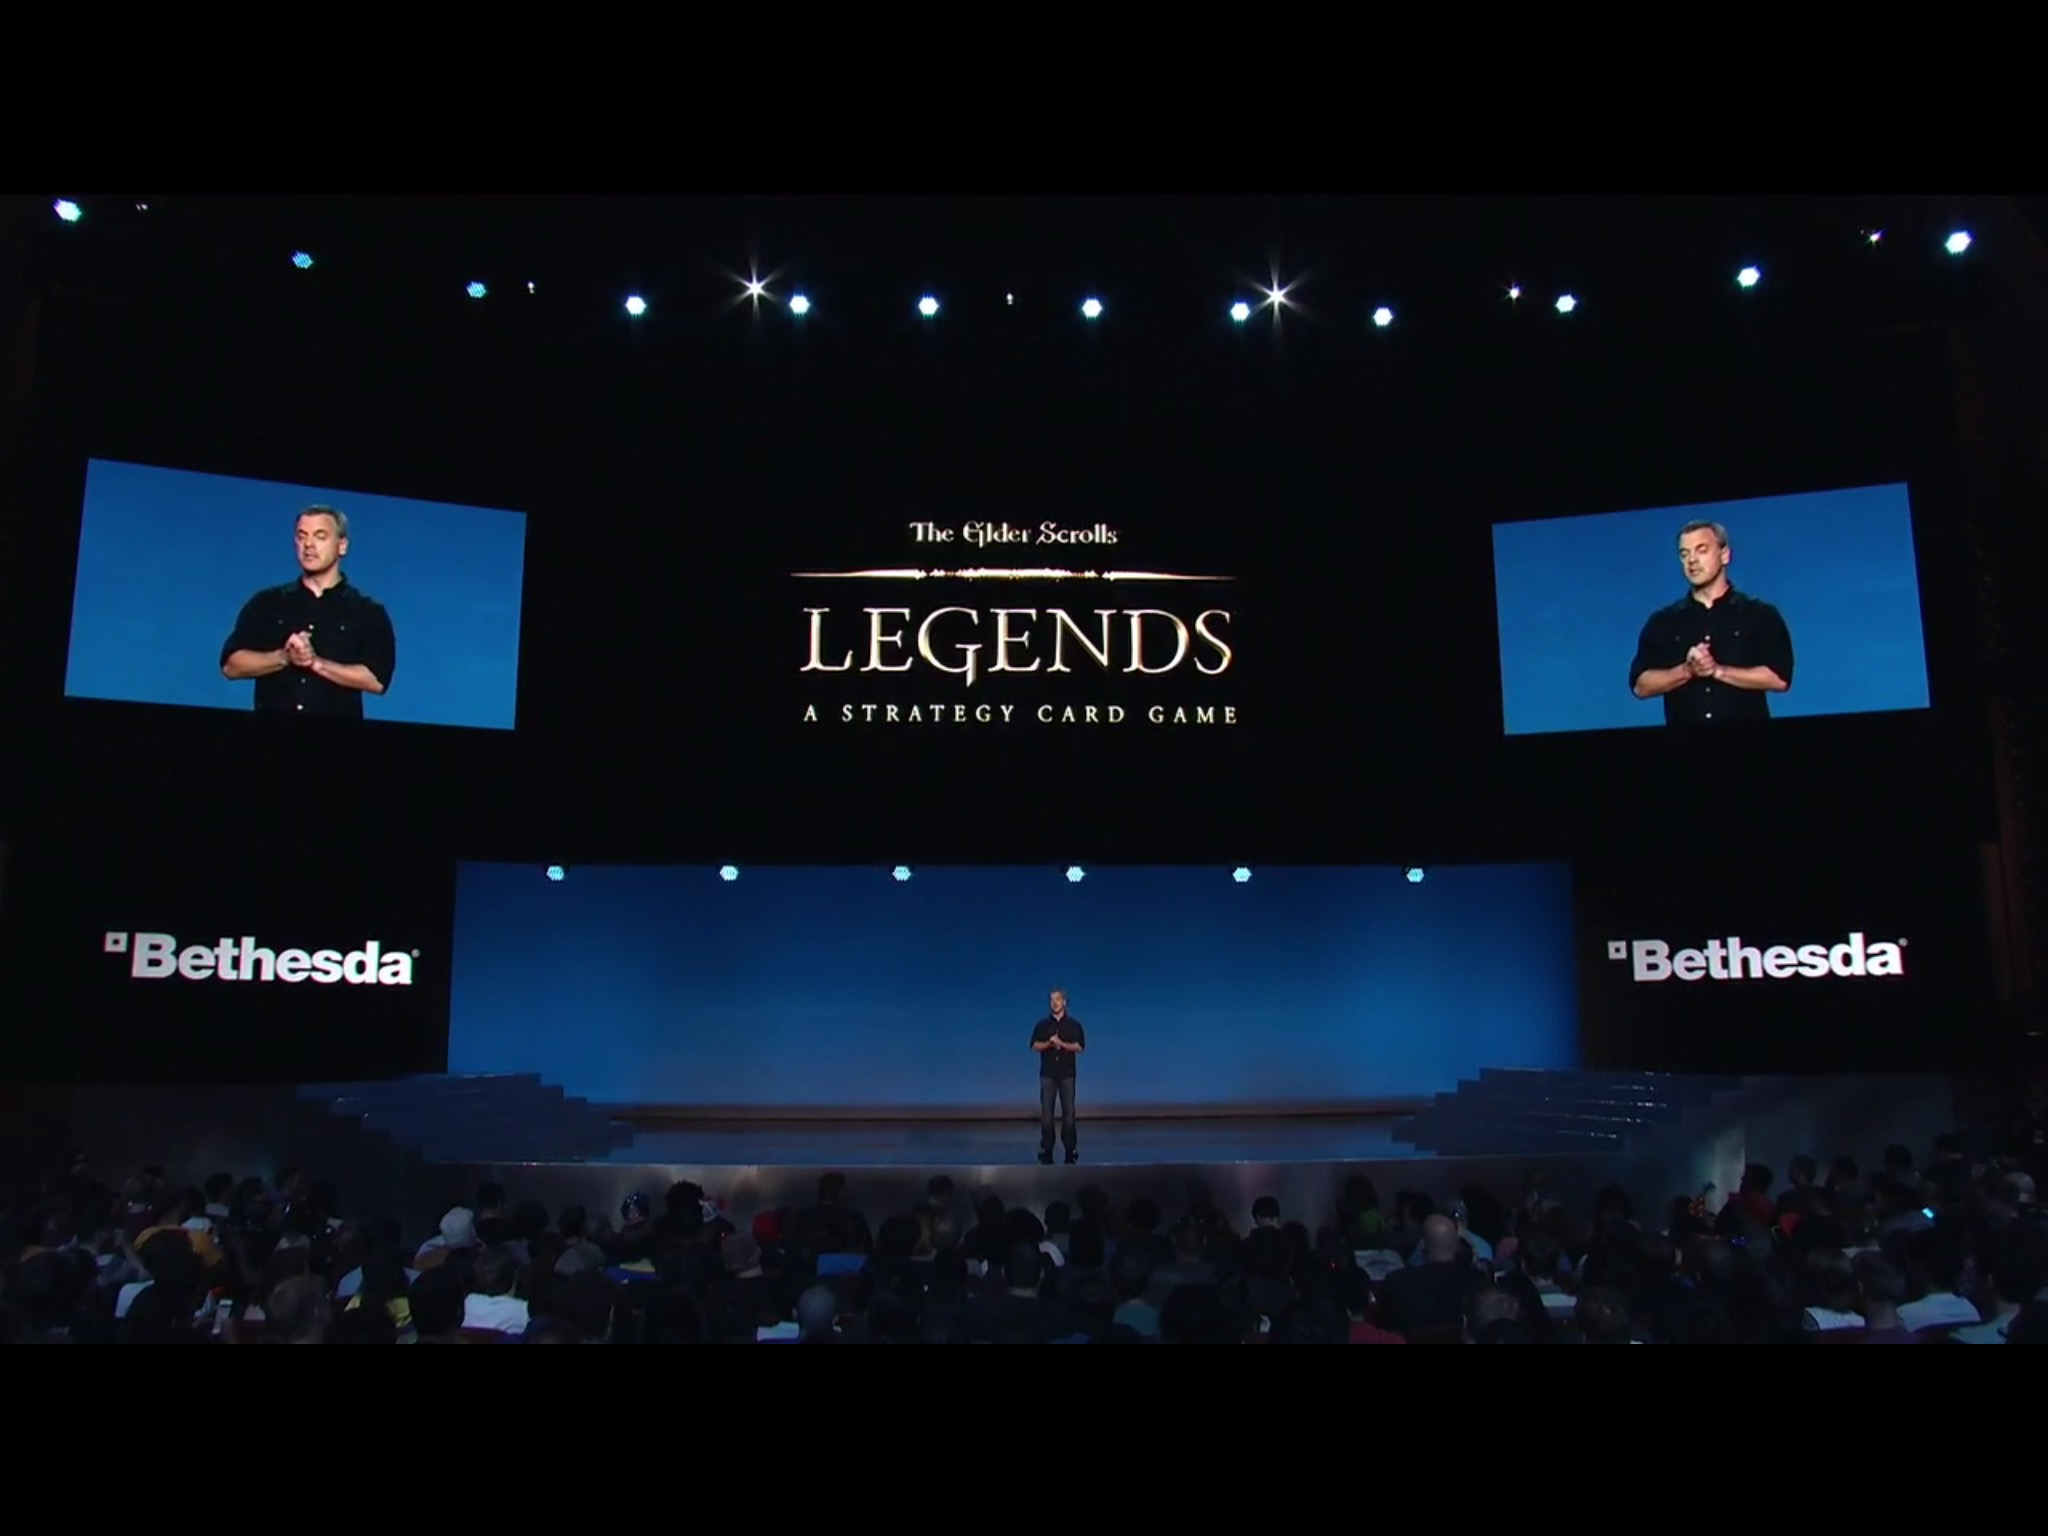 Bethesda Announces 'The Elder Scrolls Legends' Competitive Card Game at their Pre-E3 Media Event